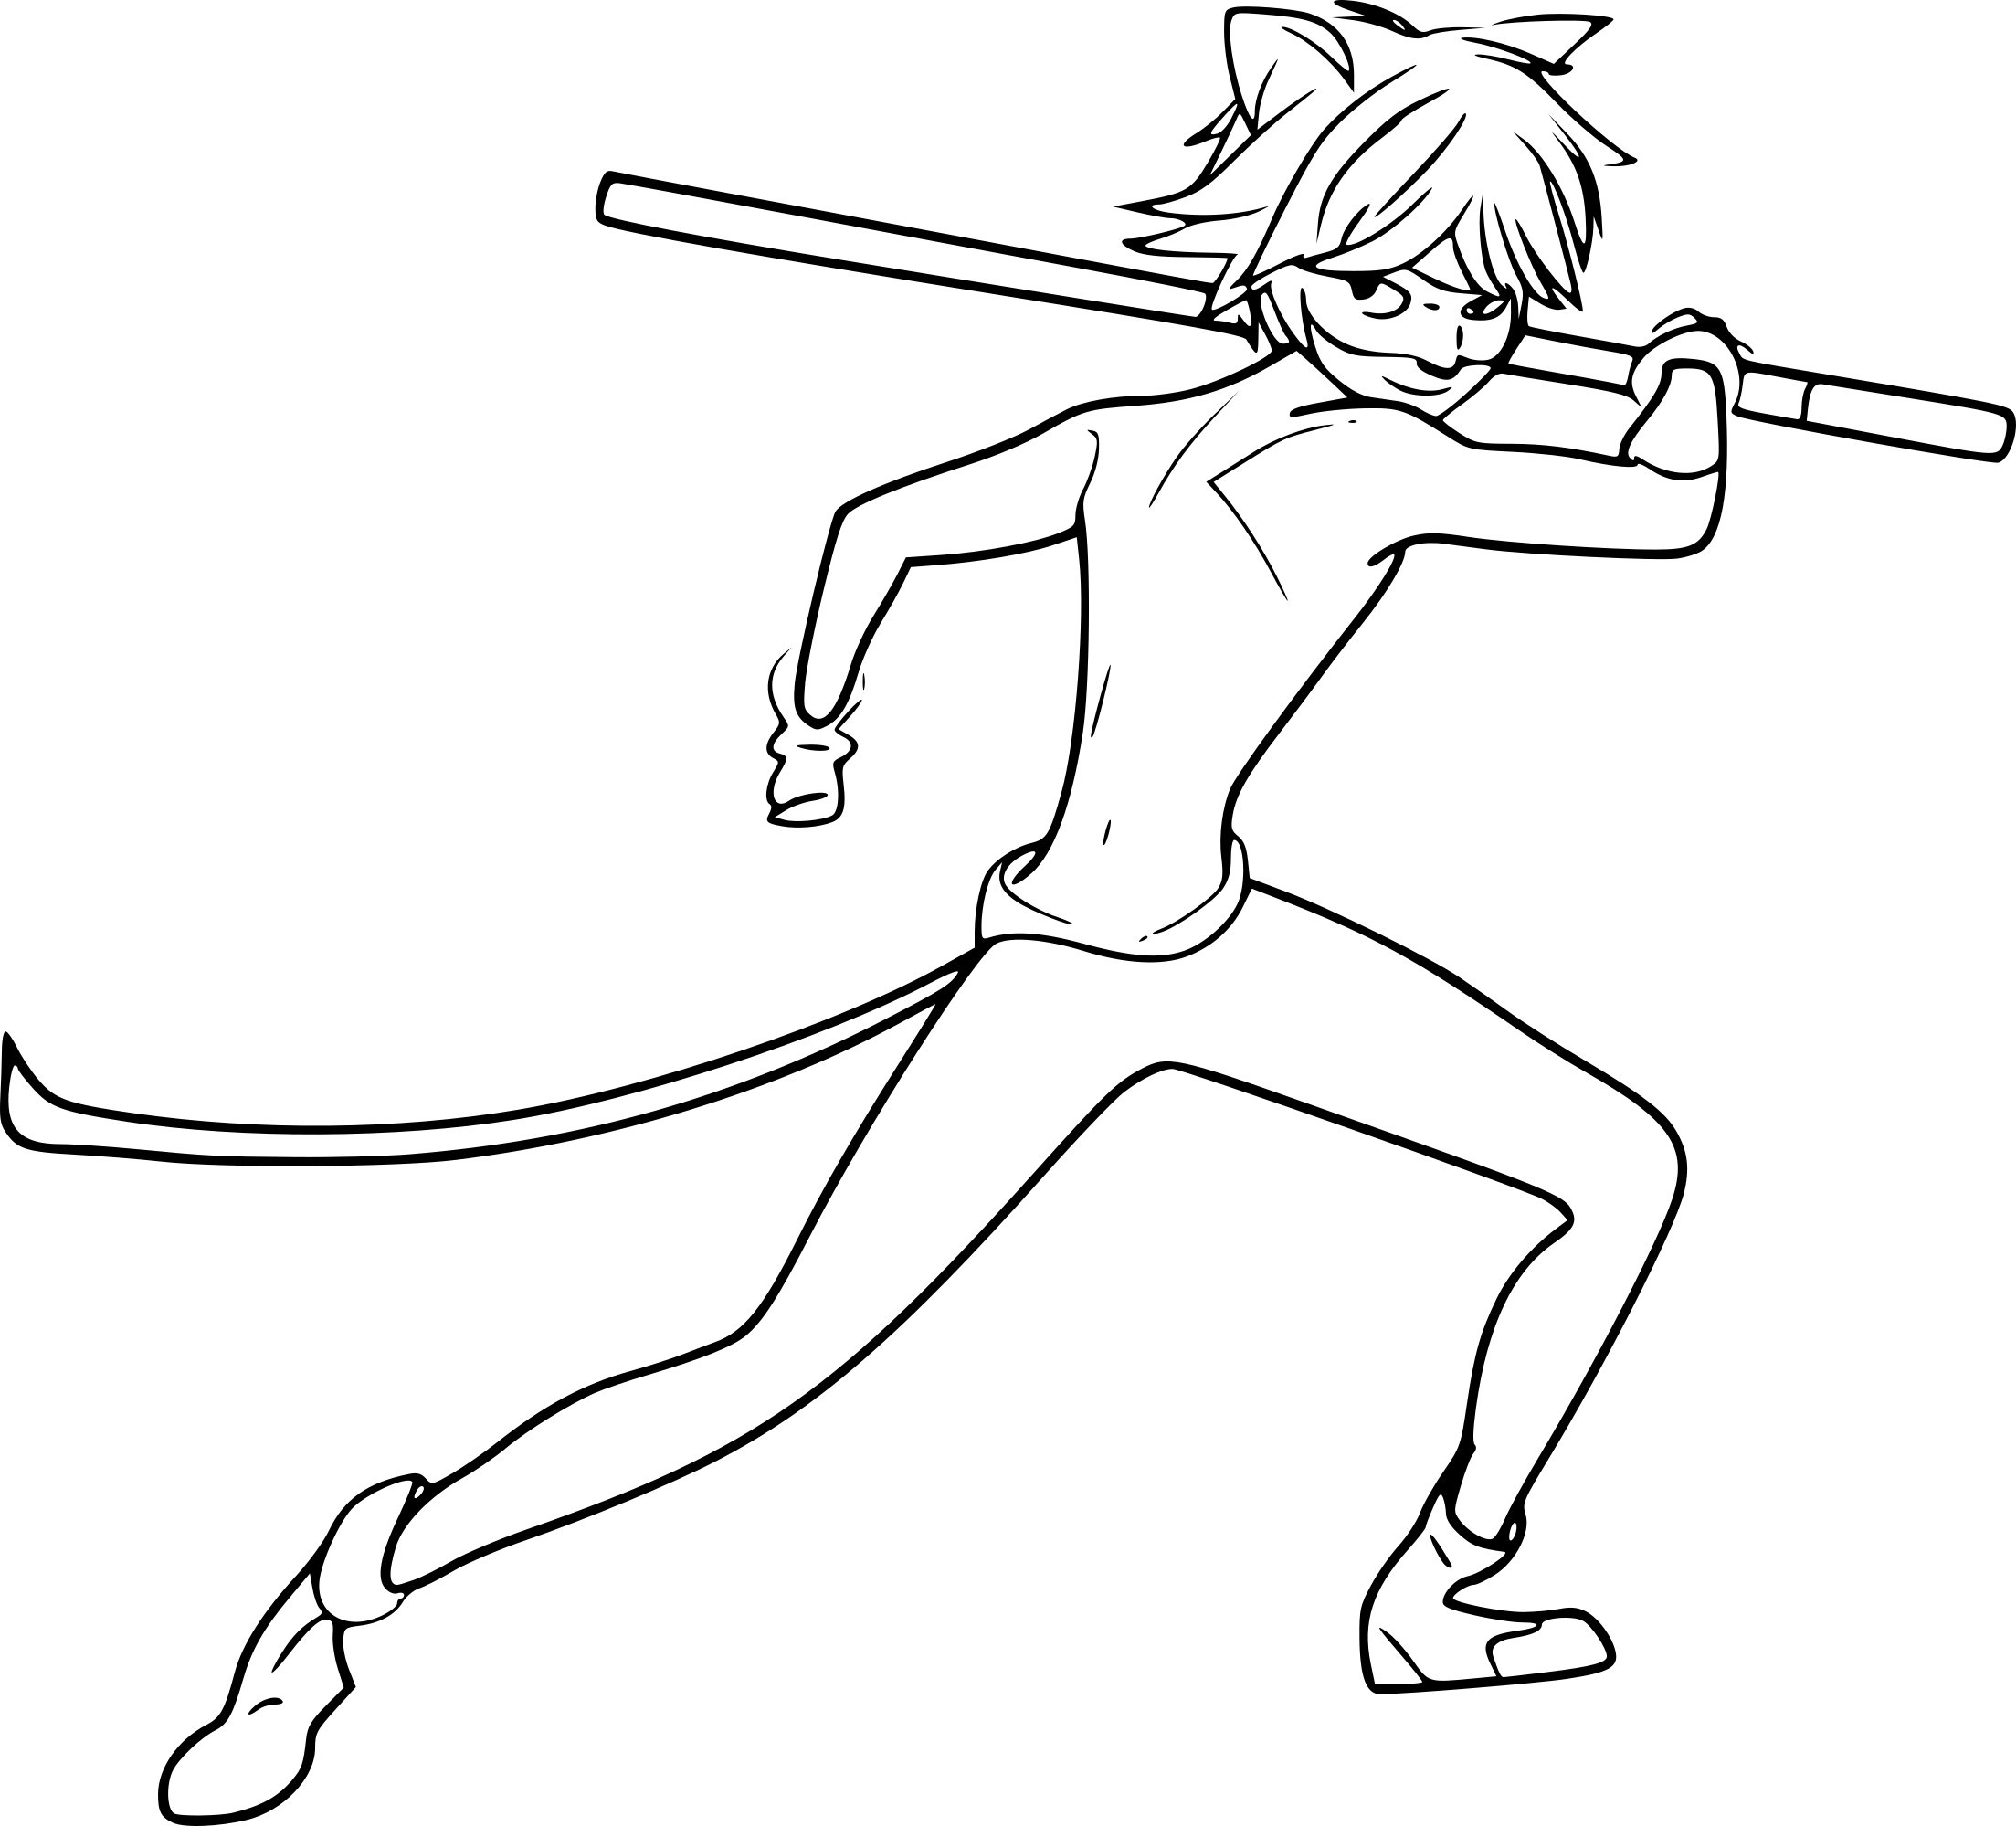 Miraculous Ladybug Coloring Pages Coloring Ladybug Save Miraculous Ladybug Coloring Pages Youloveit